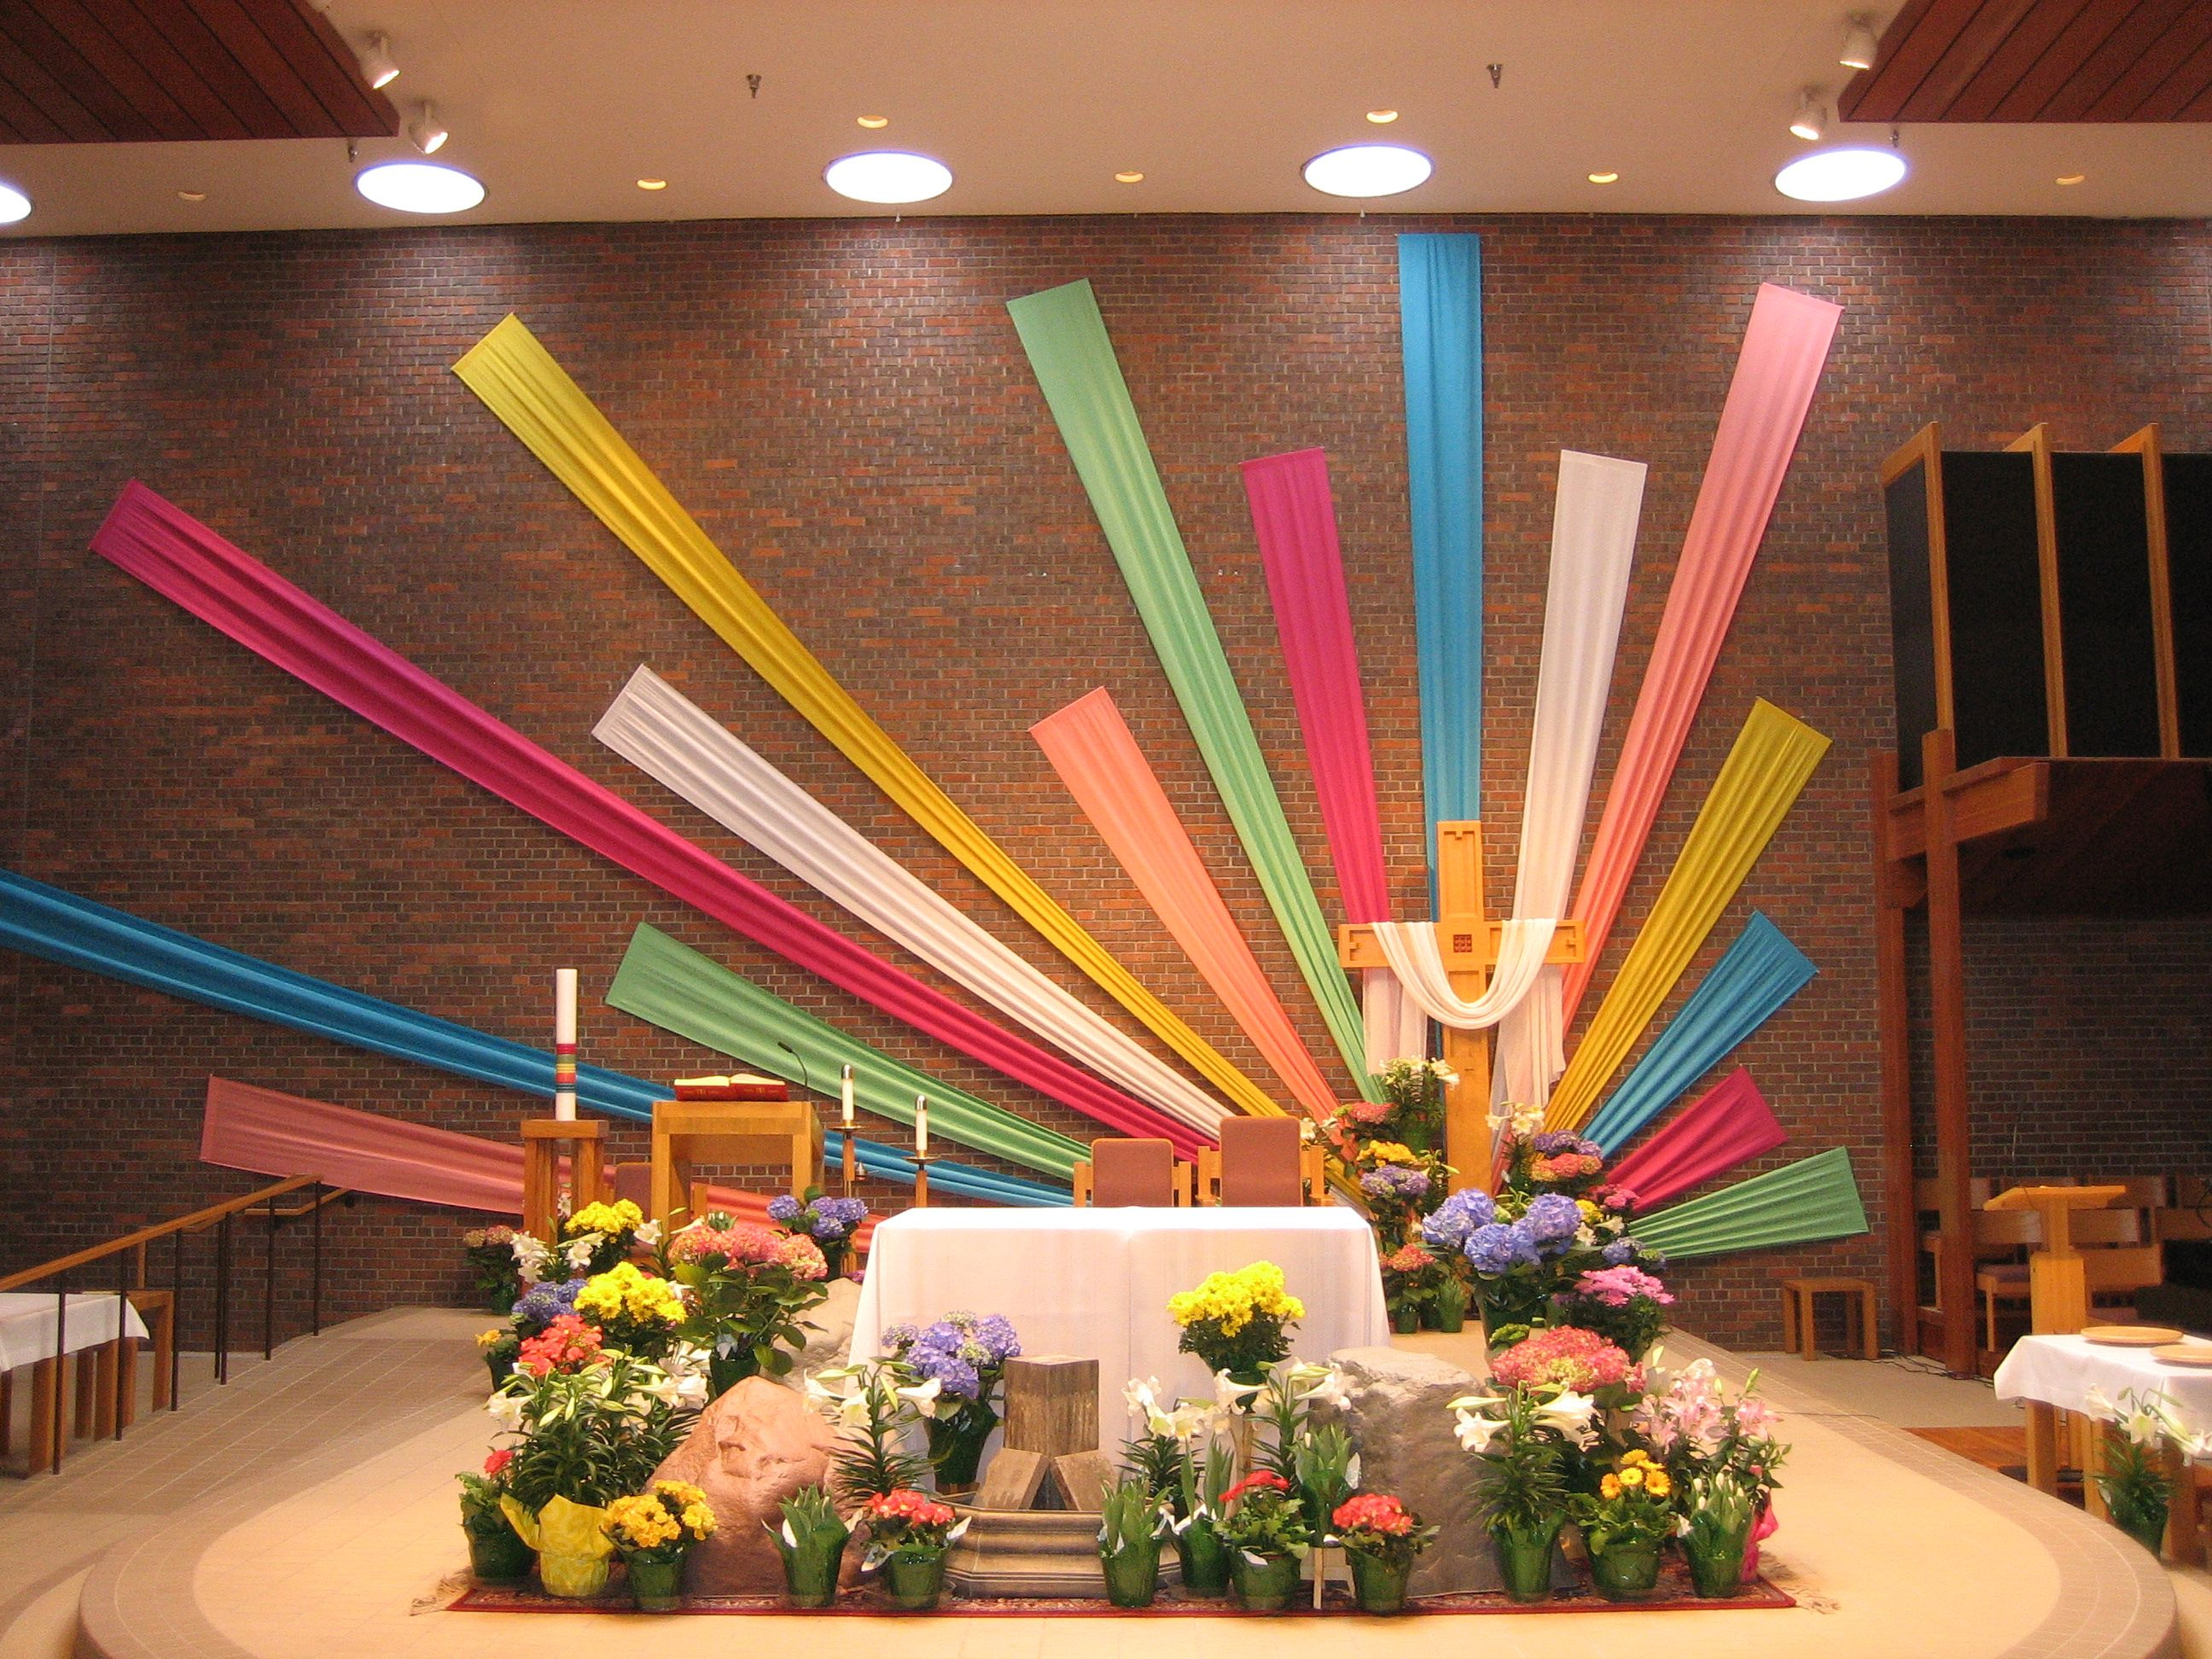 Easter Decorating Ideas For Church liturgical decorations - google search | church decorations